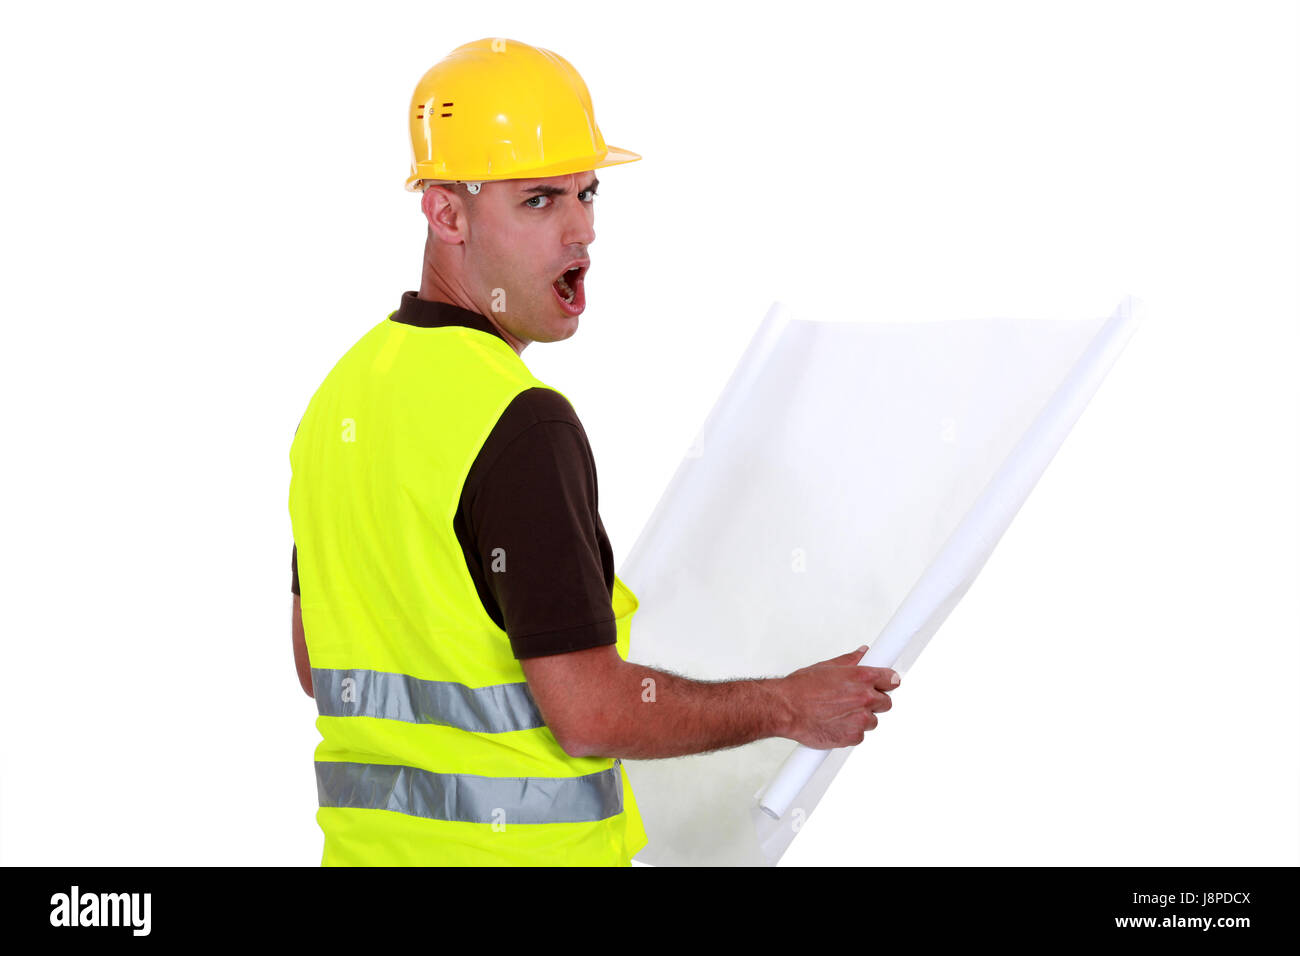 private, house, building, isolated, command, male, masculine, face, hat, Stock Photo